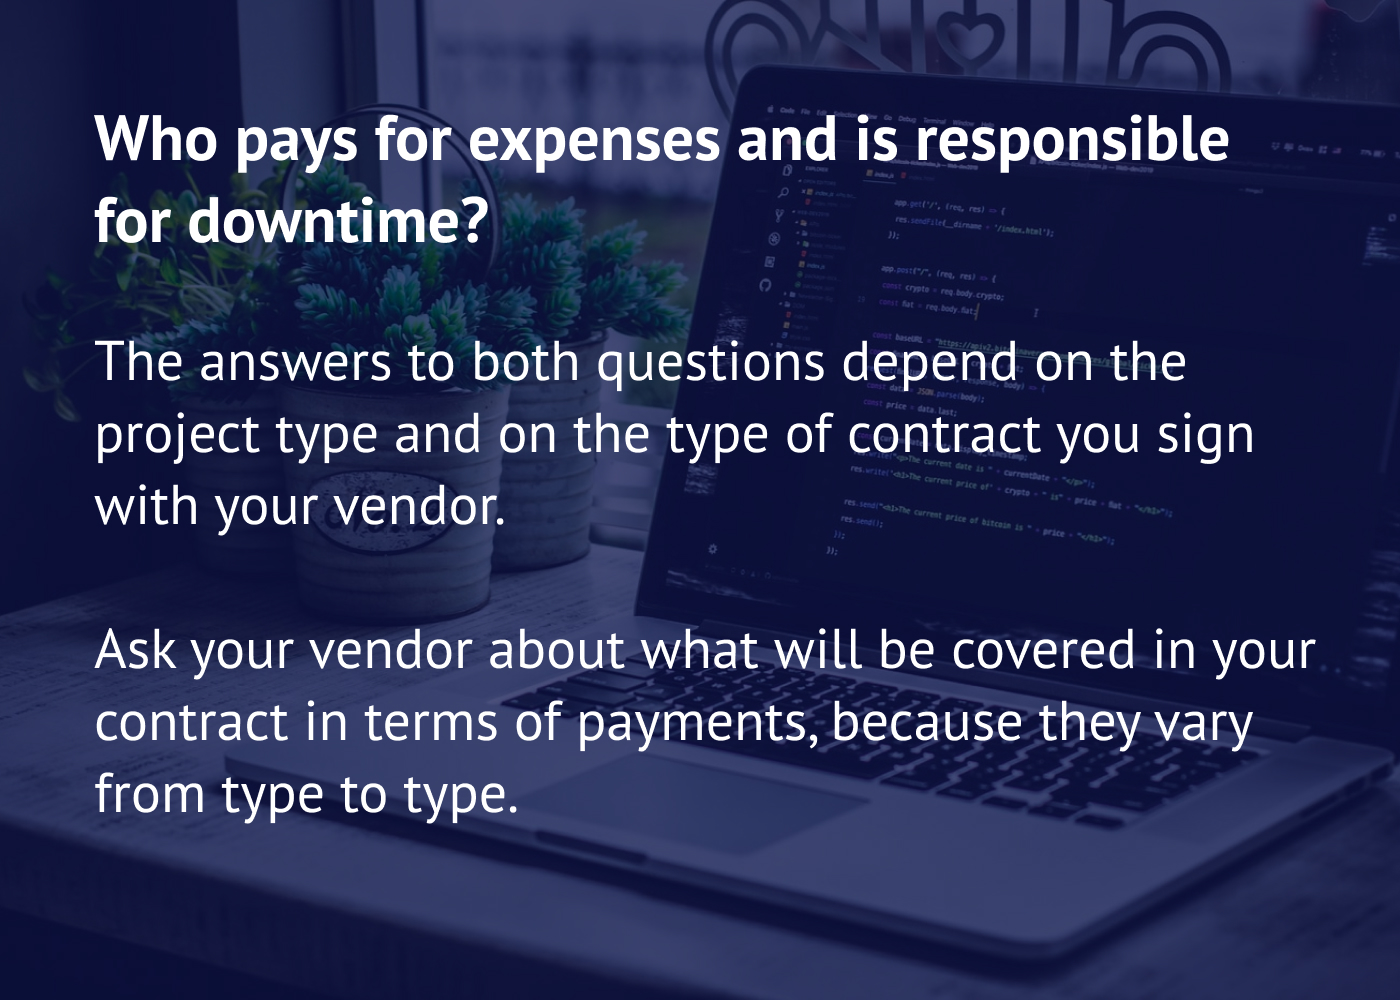 Who pays for expenses and is responsible for downtime